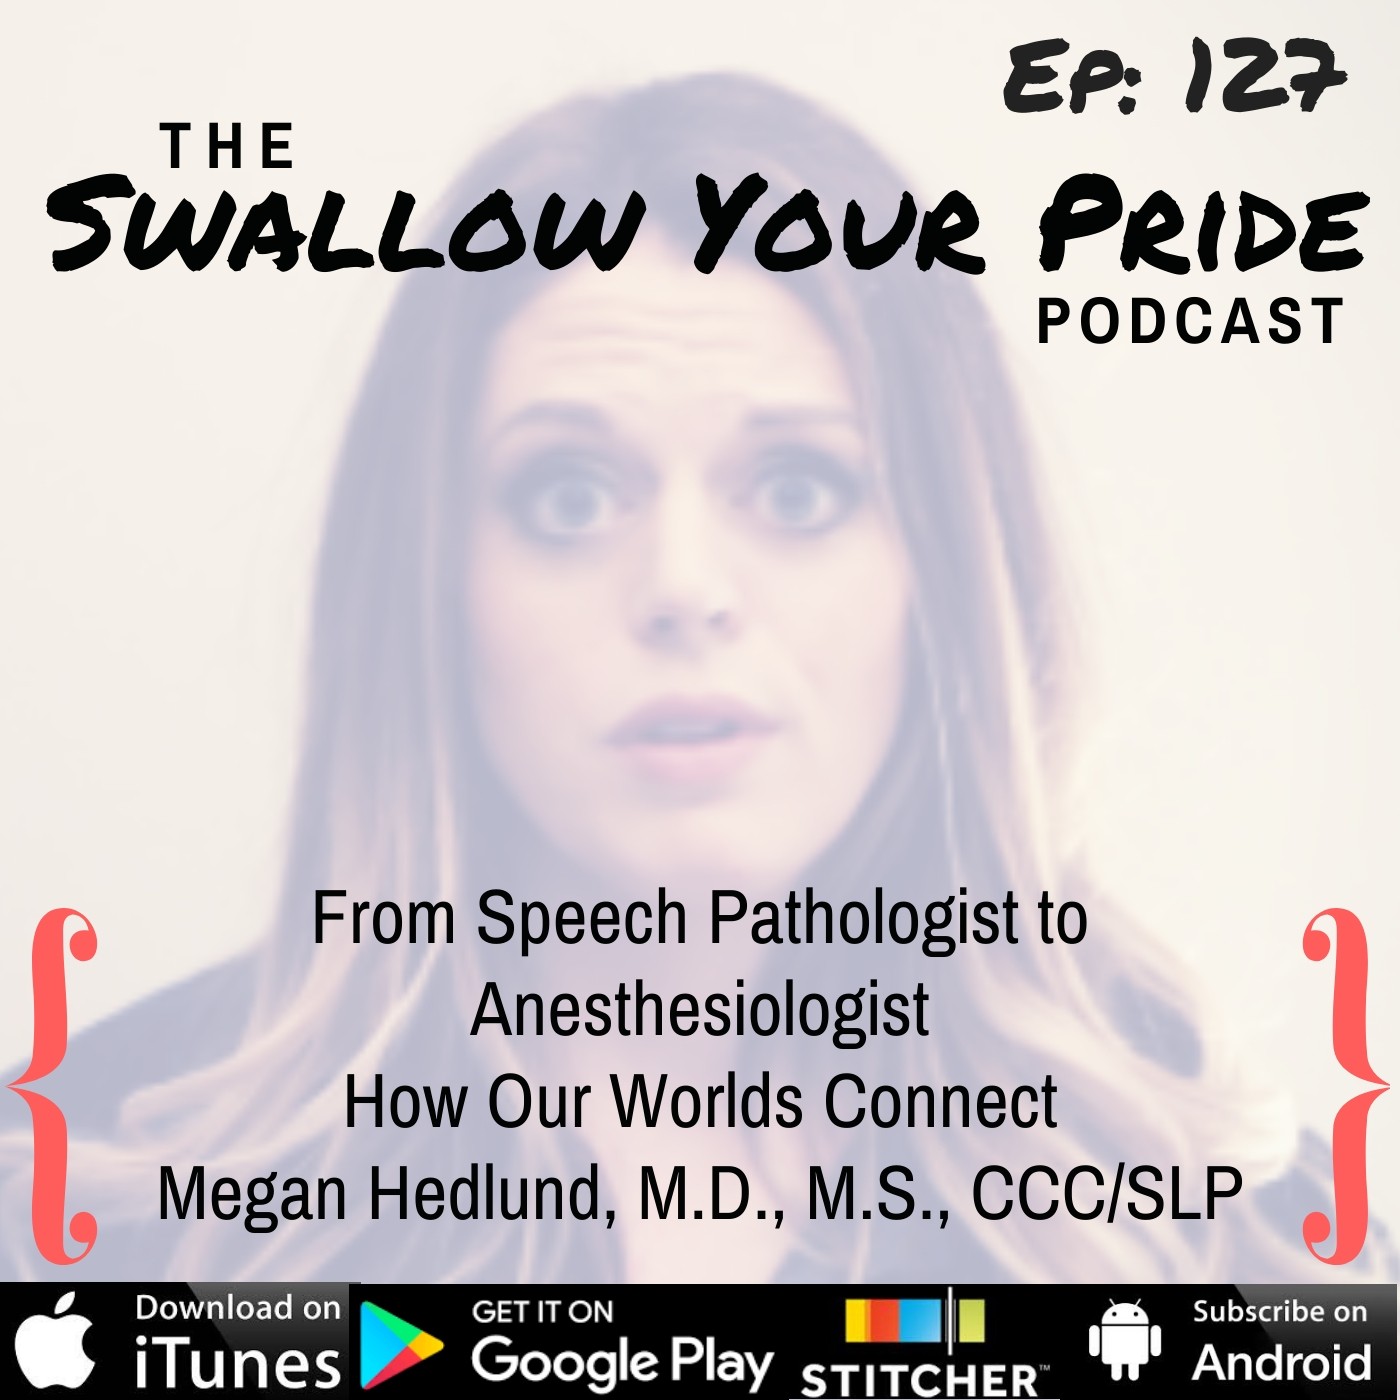 127 – Megan Hedlund, M.D., M.S., CCC-SLP – From Speech Pathologist to Anesthesiologist – How Our Worlds Connect